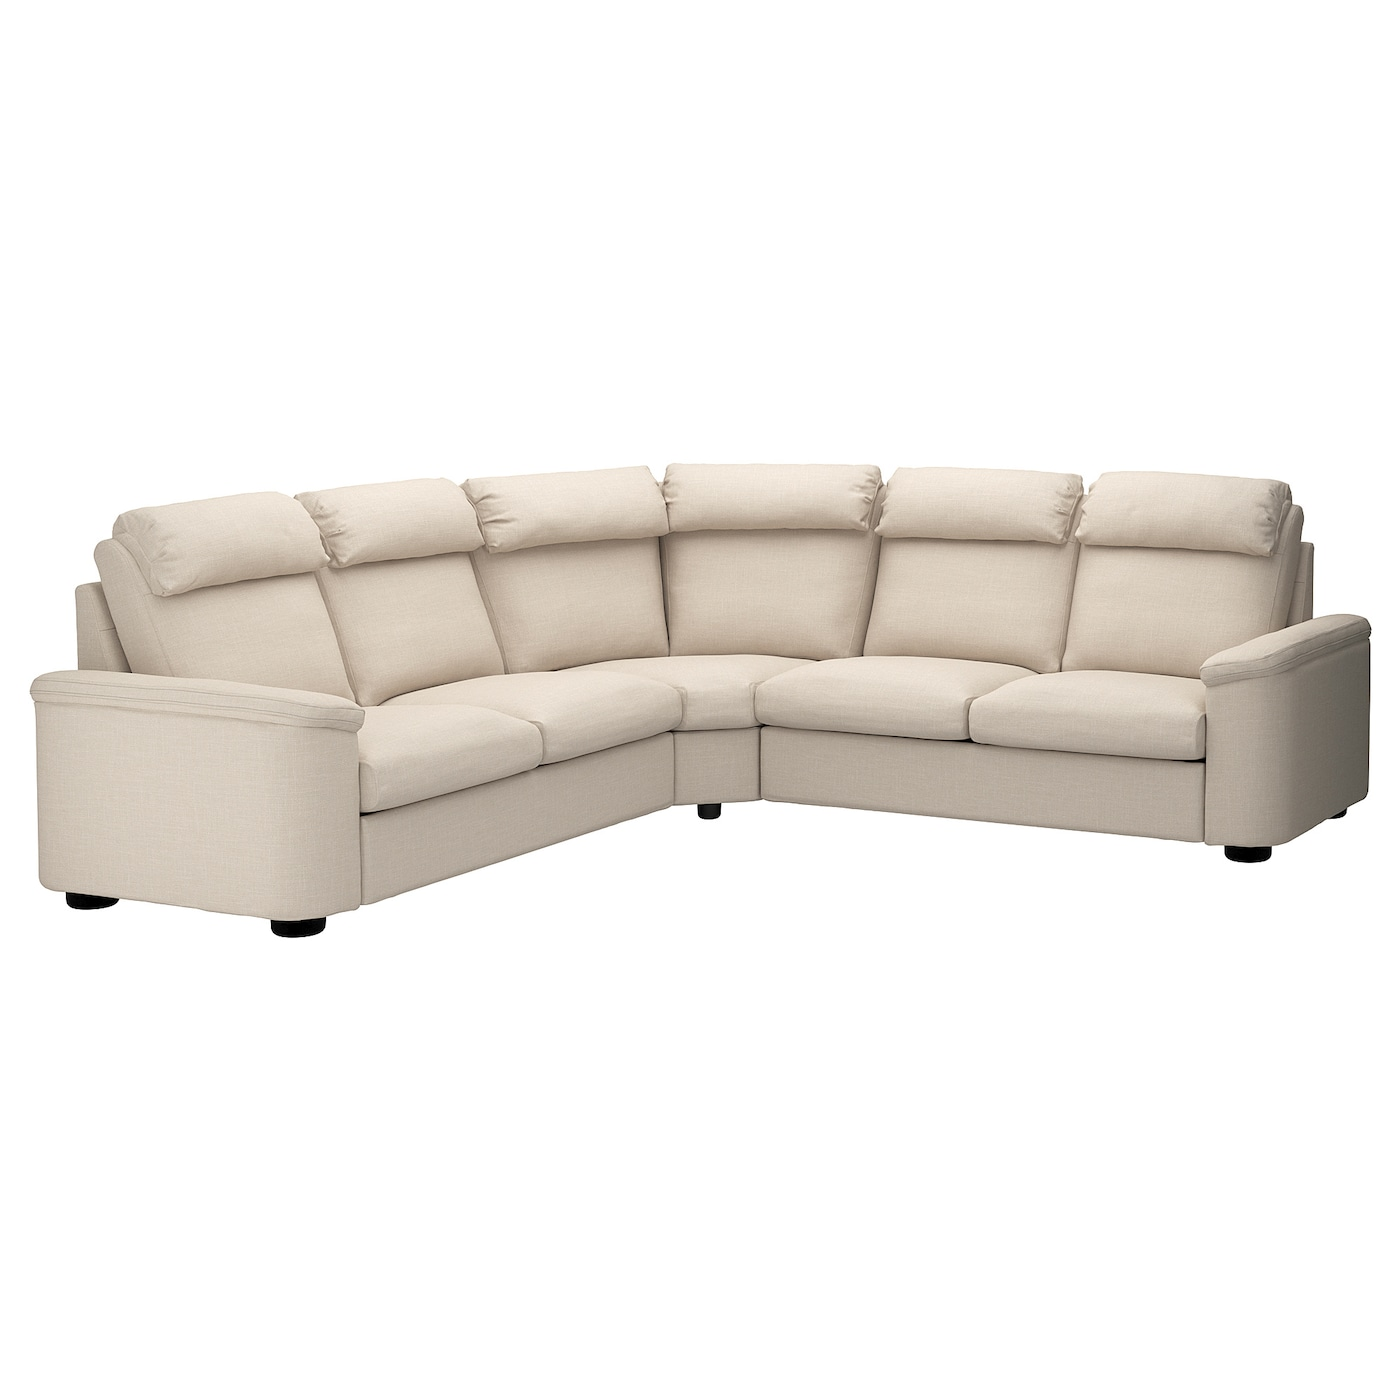 Amazing Lidhult Corner Sofa Bed 5 Seat Gassebol Light Beige Caraccident5 Cool Chair Designs And Ideas Caraccident5Info